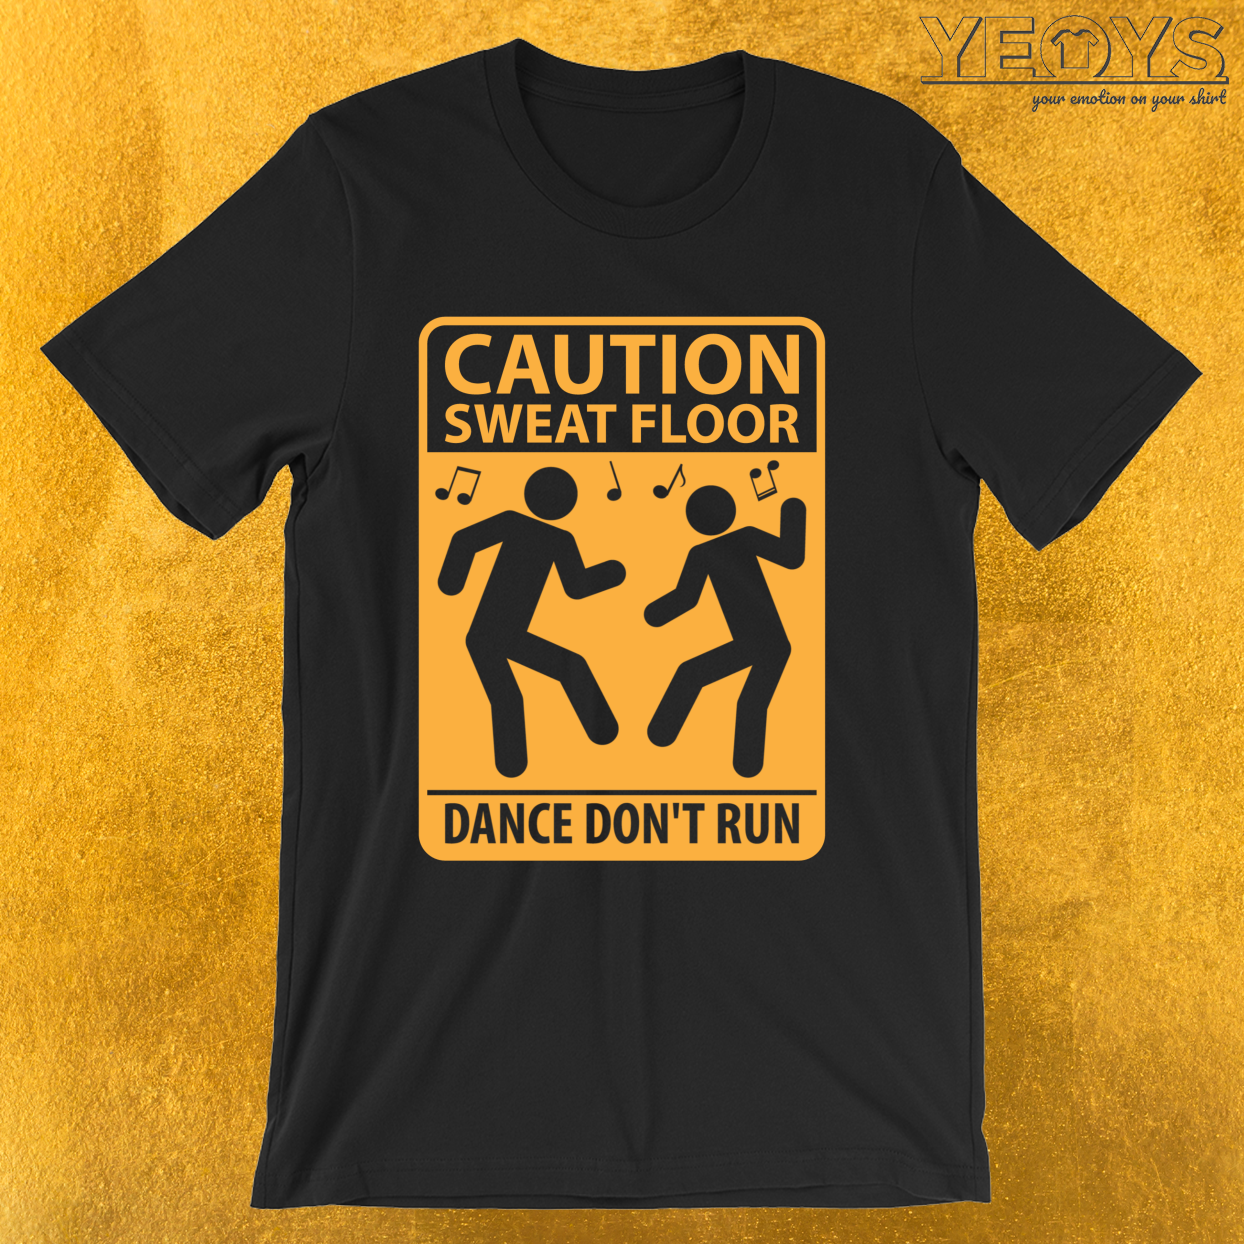 Caution Sweat Floor Dance Don't Run – Funny Dj Quotes Tee